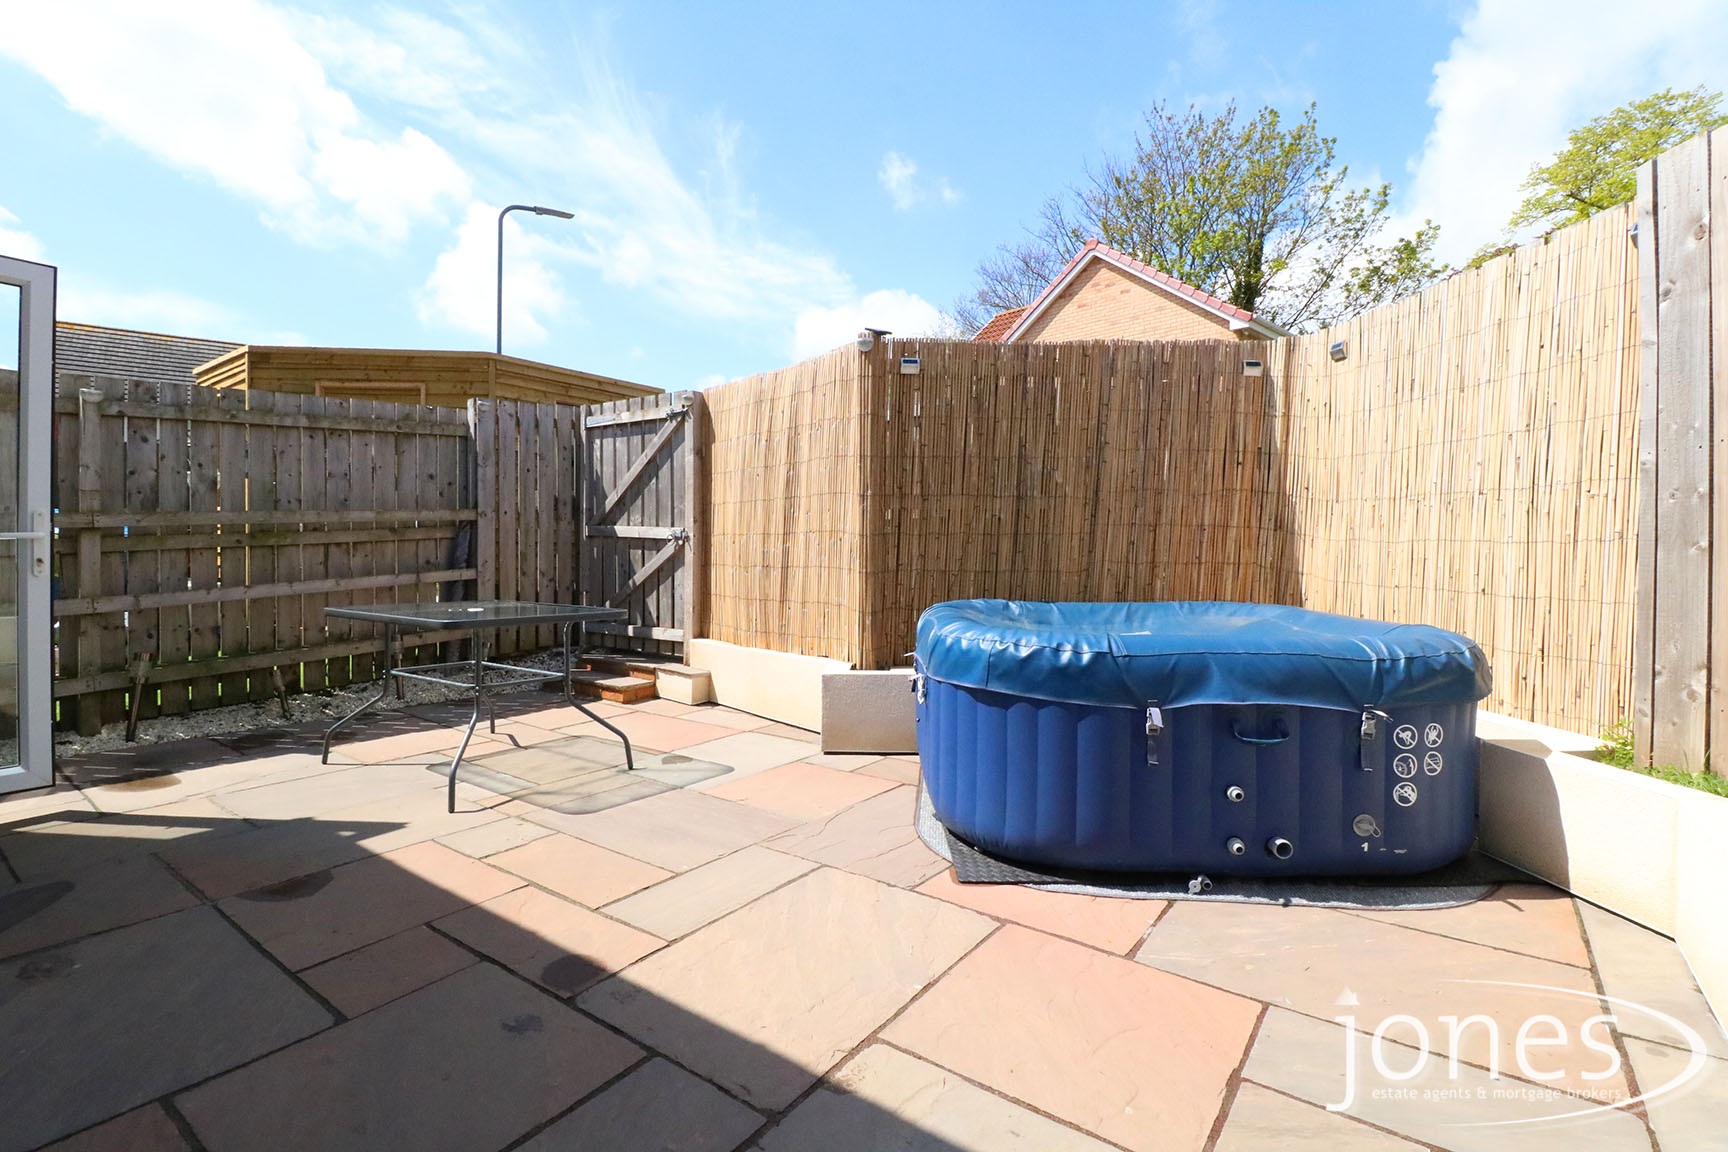 Home for Sale Let - Photo 12 Aristotle Drive, Stockton on Tees,  TS19 8GH